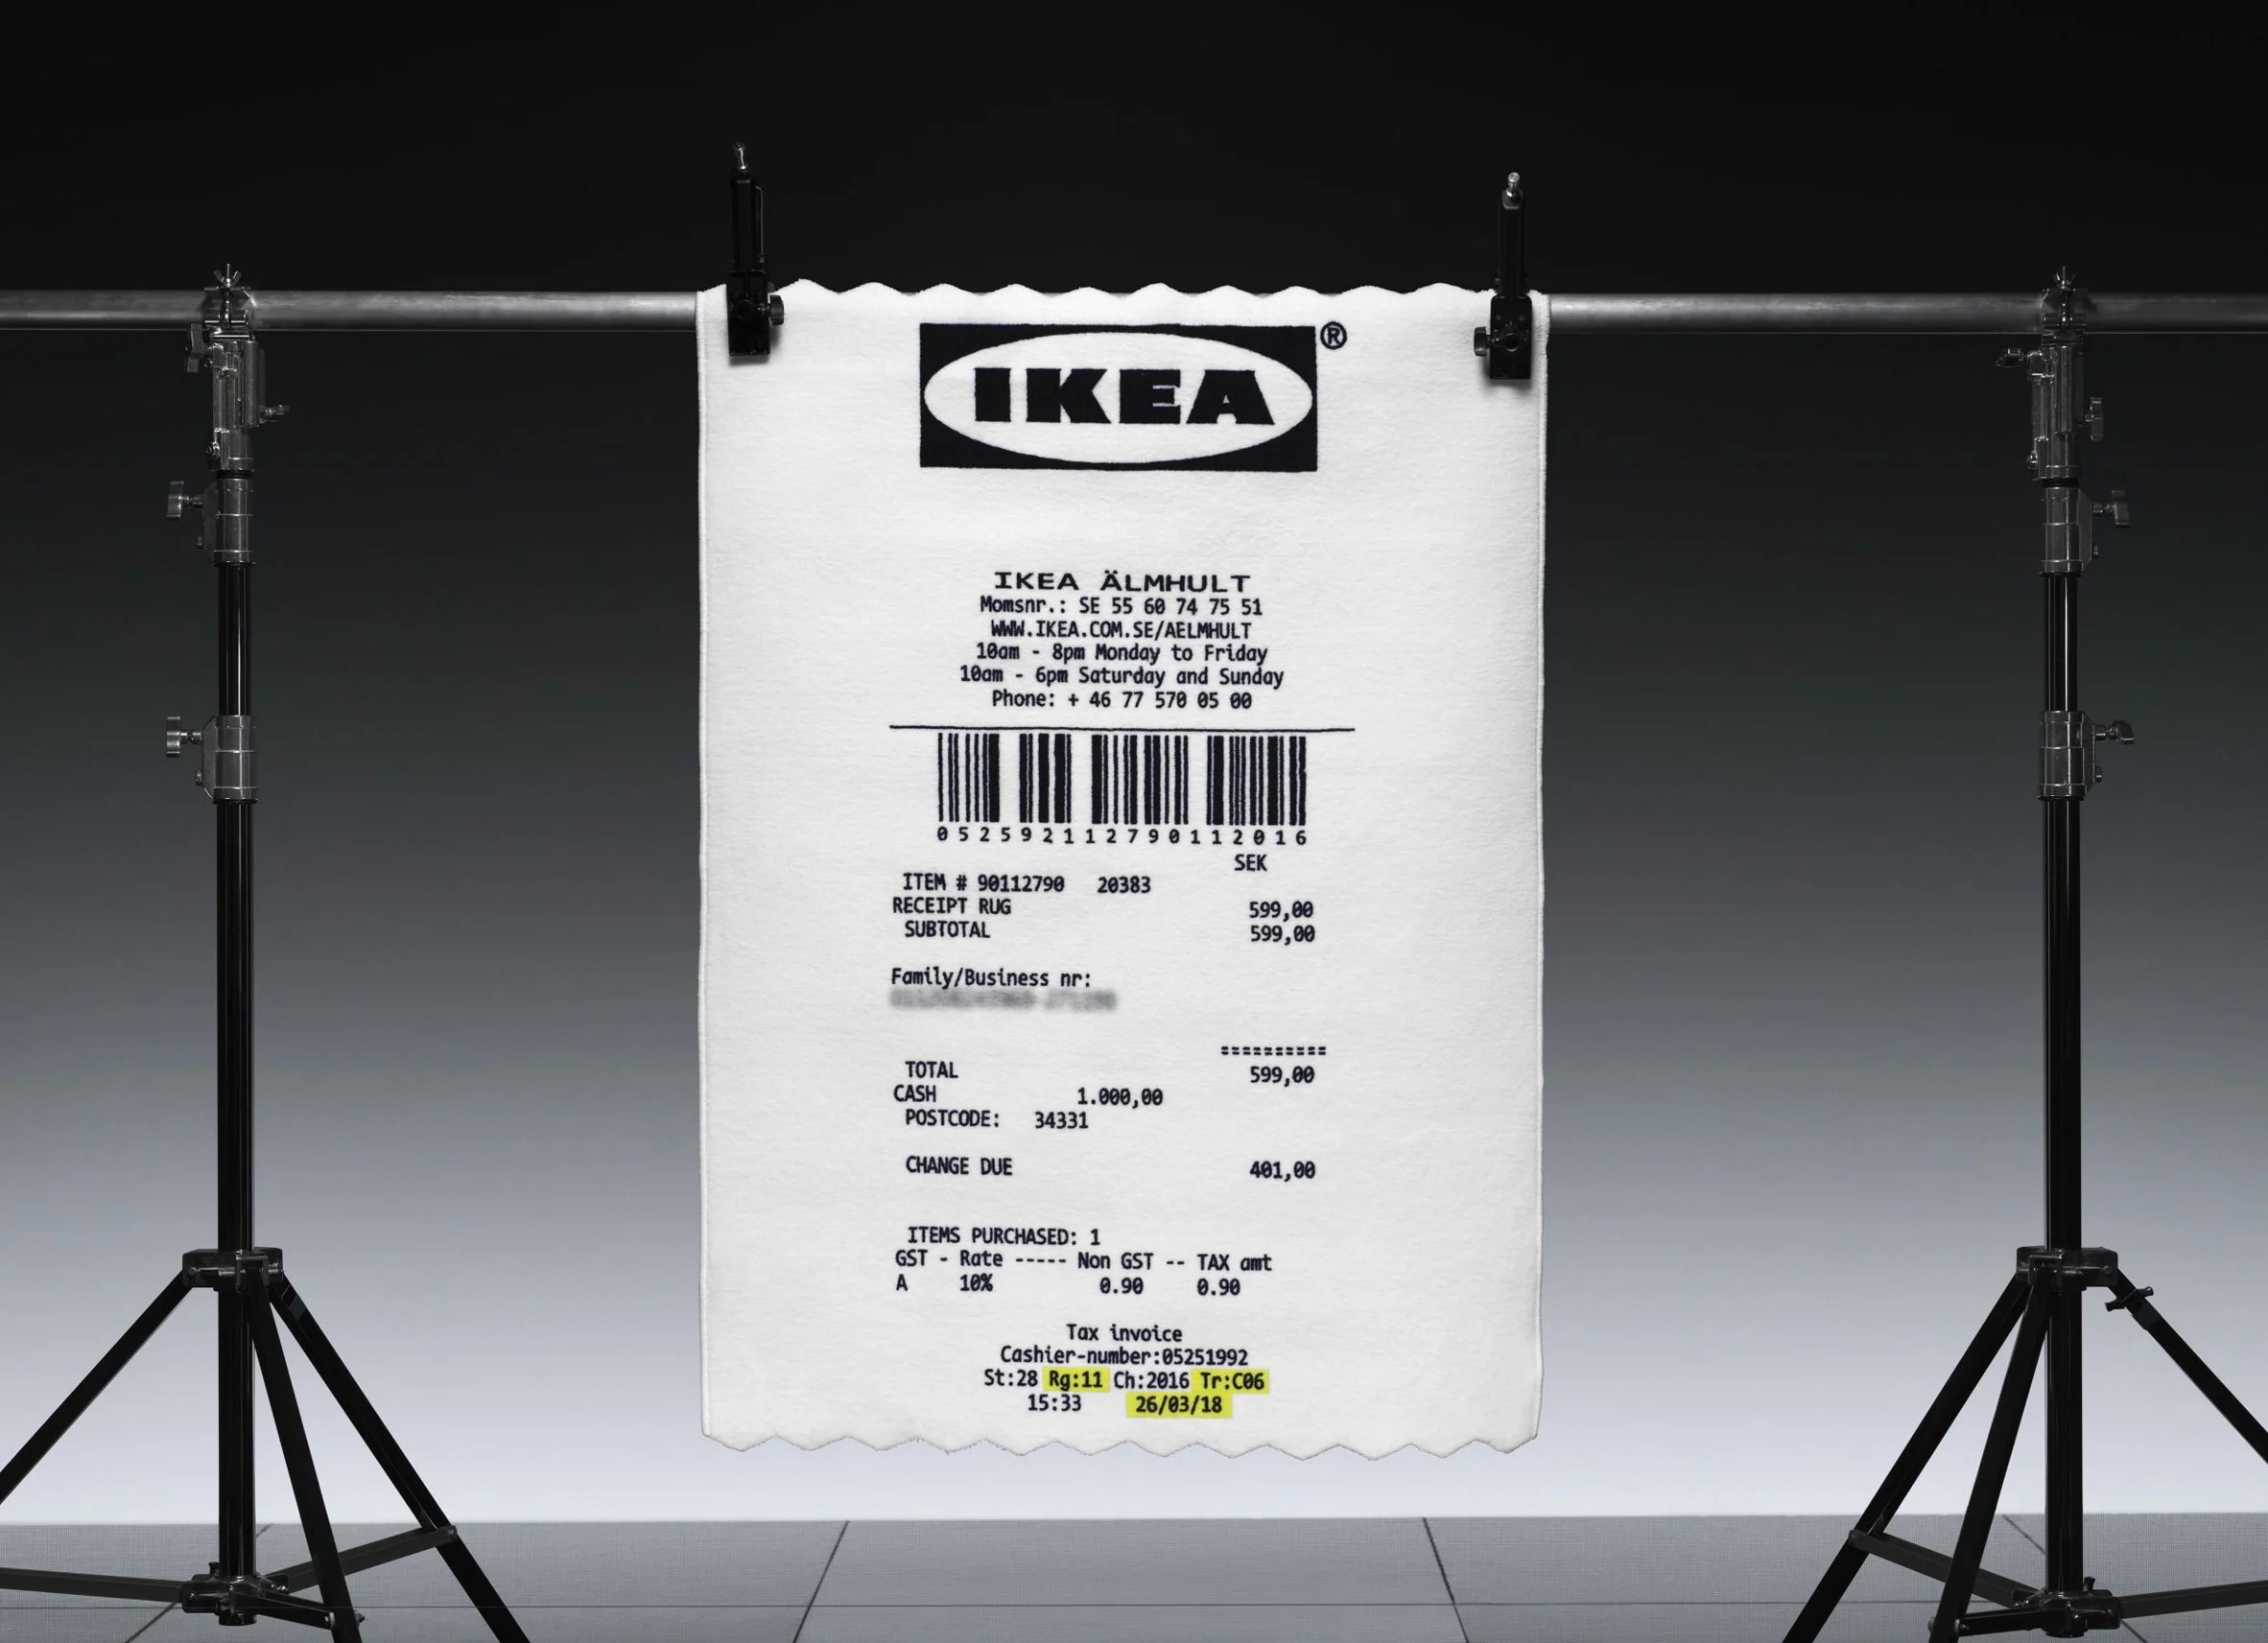 Neon Ikea Virgil Abloh Adds Giant Receipt Rug To Upcoming Ikea Collection